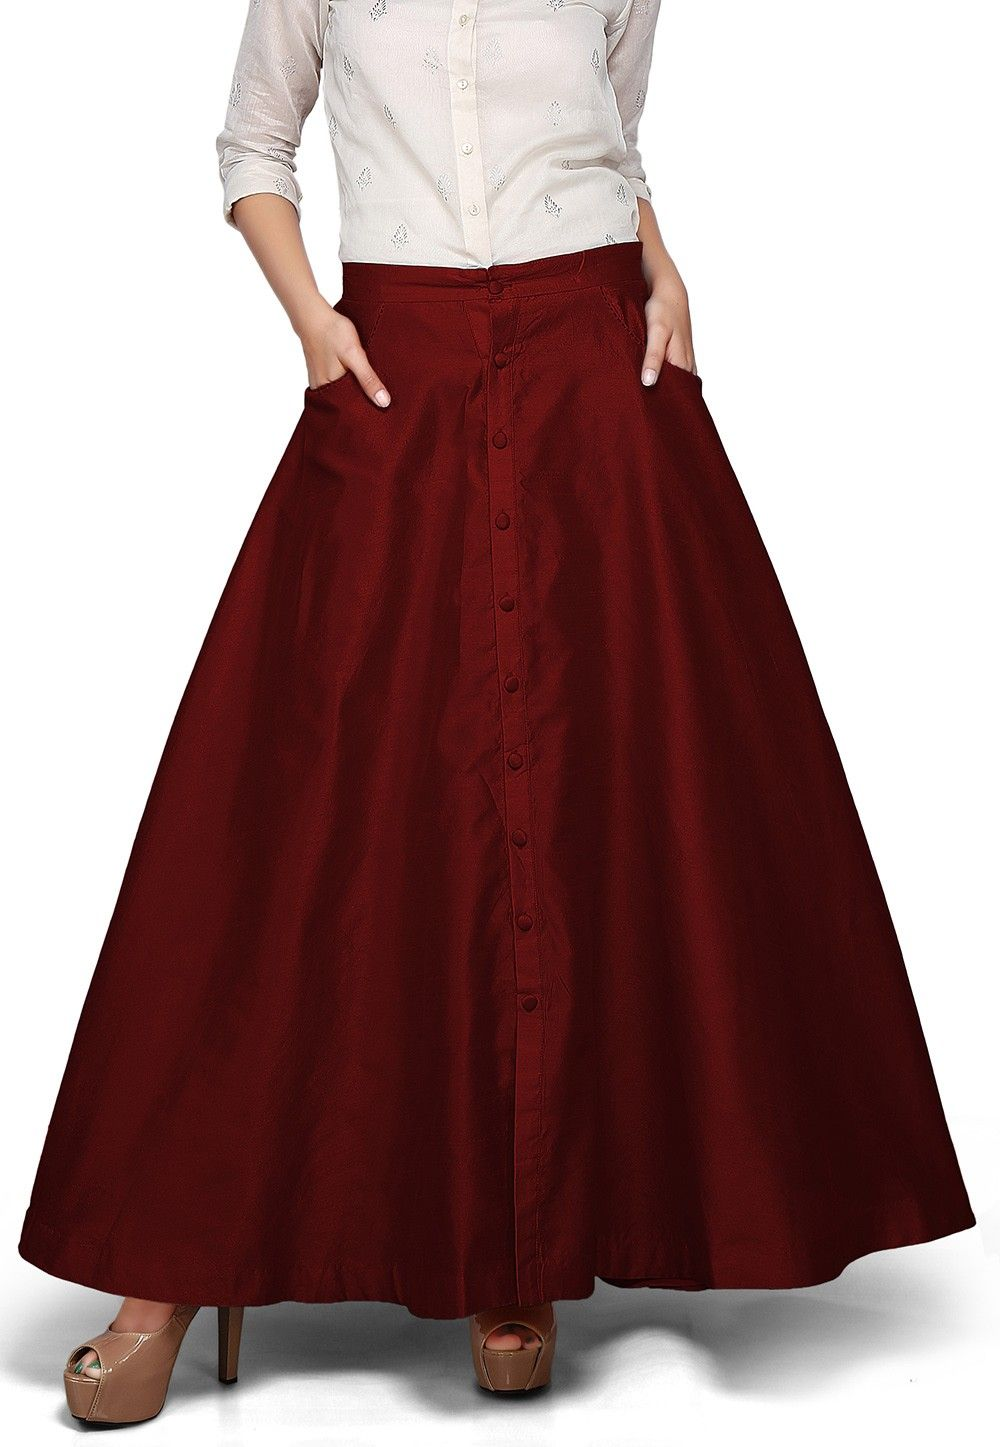 Find maroon skirt at Macy's Macy's Presents: The Edit - A curated mix of fashion and inspiration Check It Out Free Shipping with $99 purchase + Free Store Pickup.